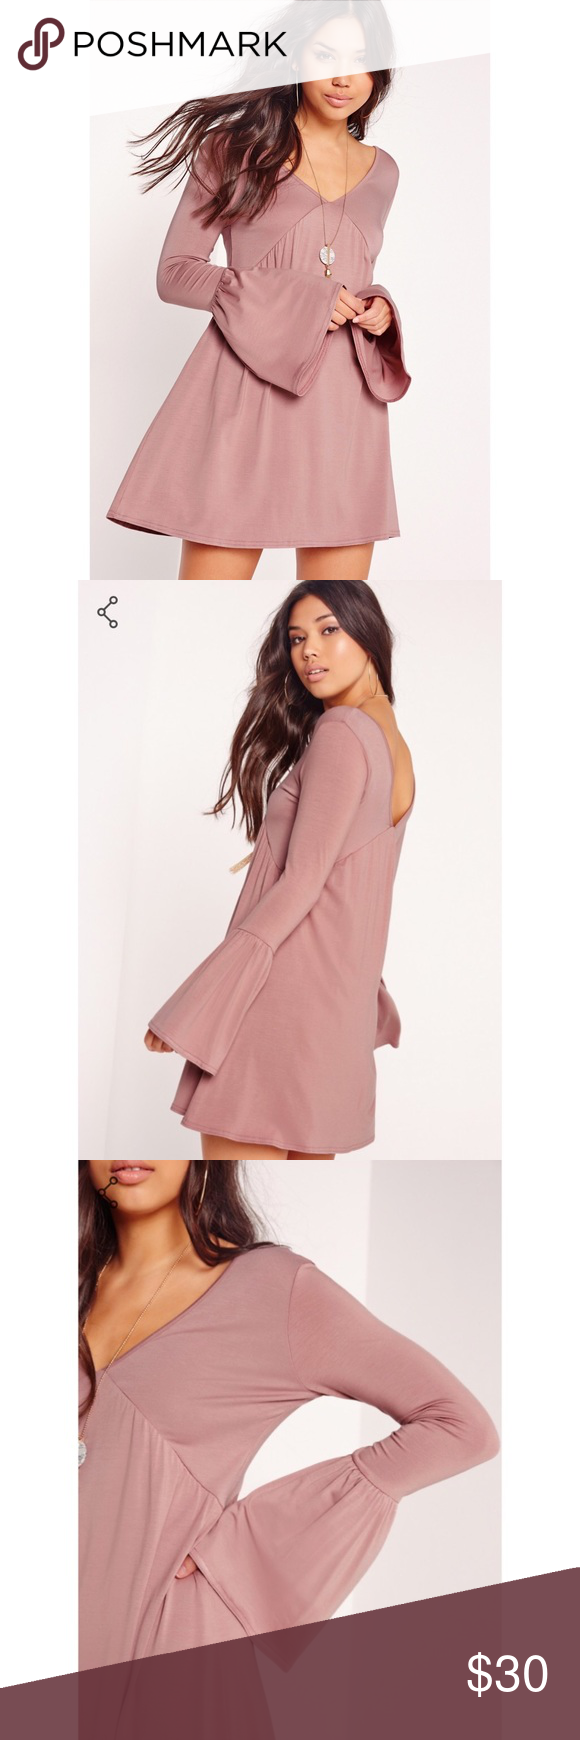 ‼️Lowest - Ask For Discounted Shipping‼️ US 0, 8 Missguided Dresses